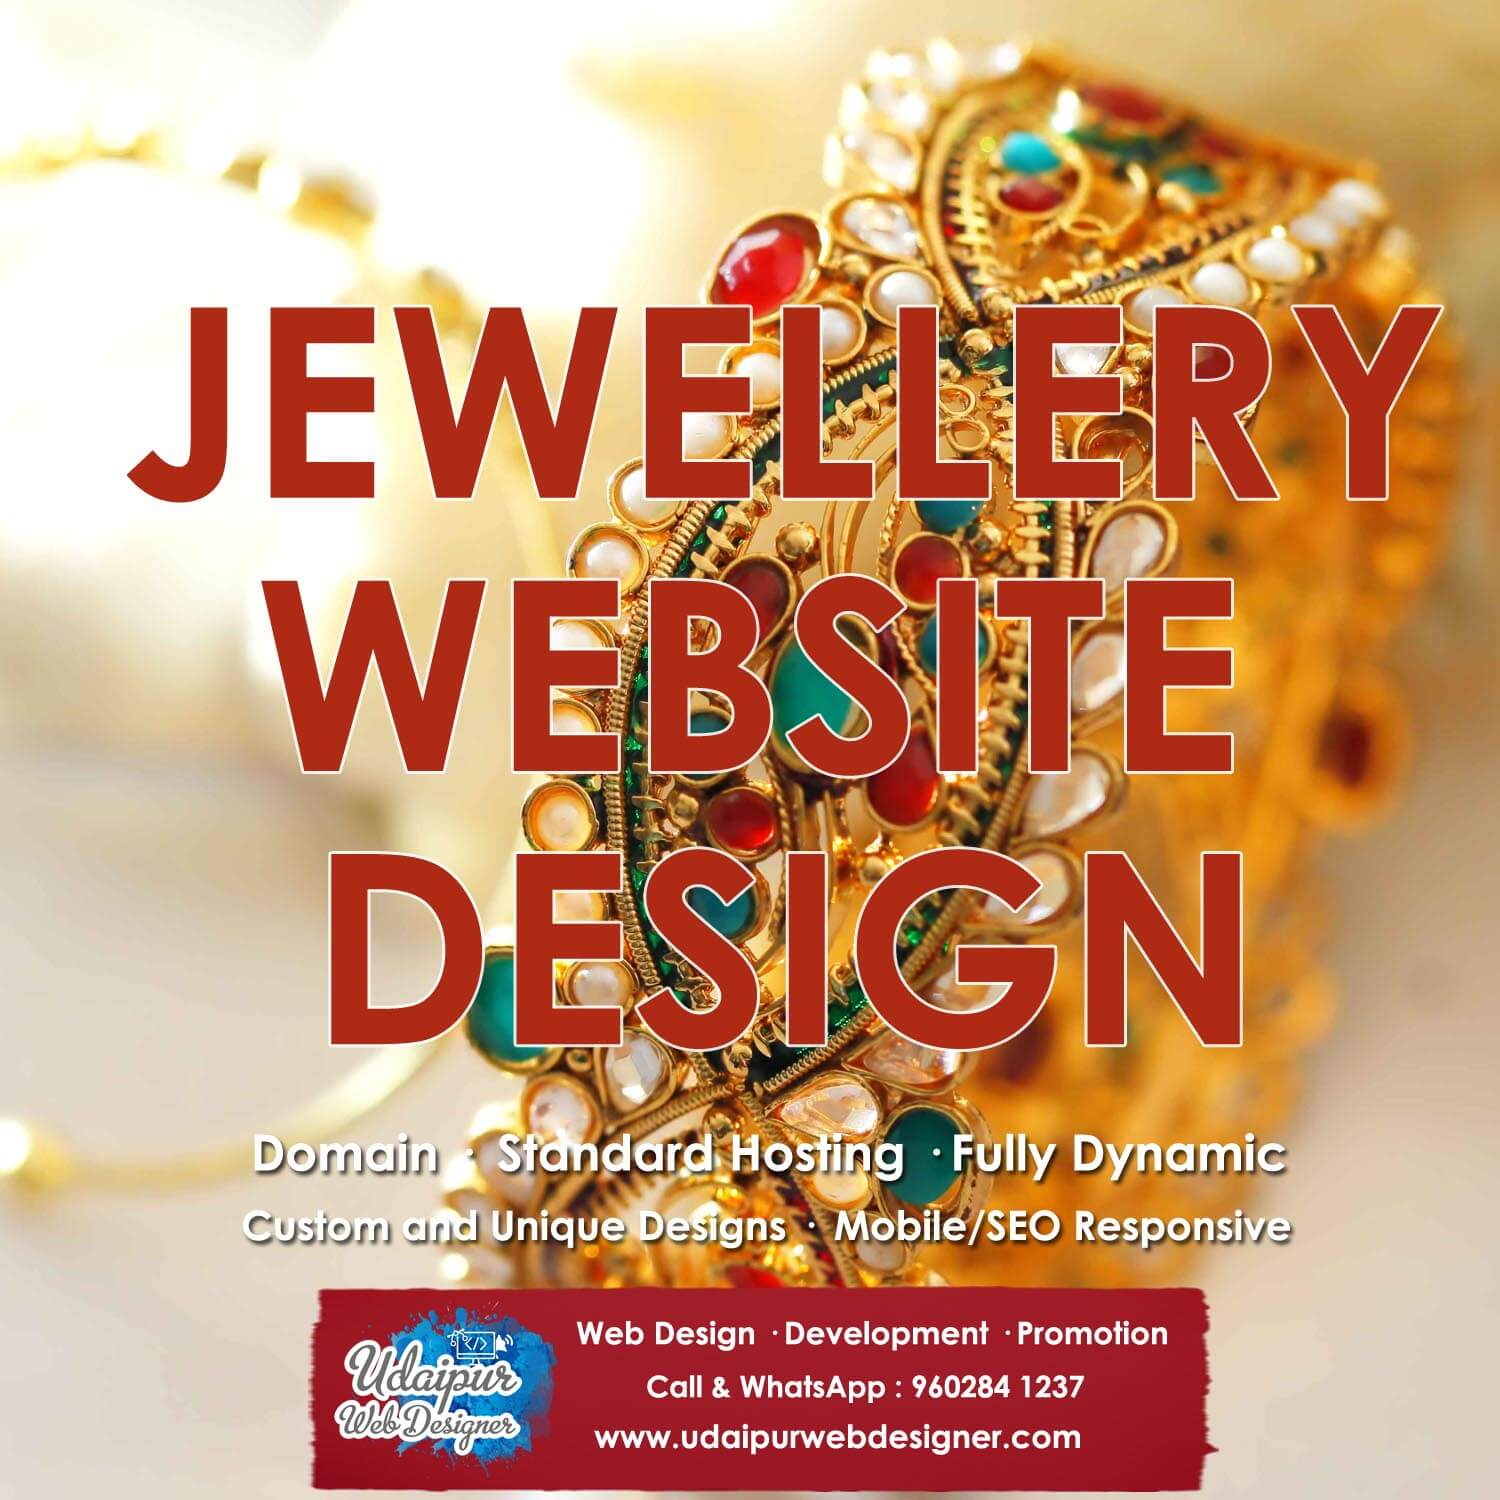 Jewellery Website Design SEO